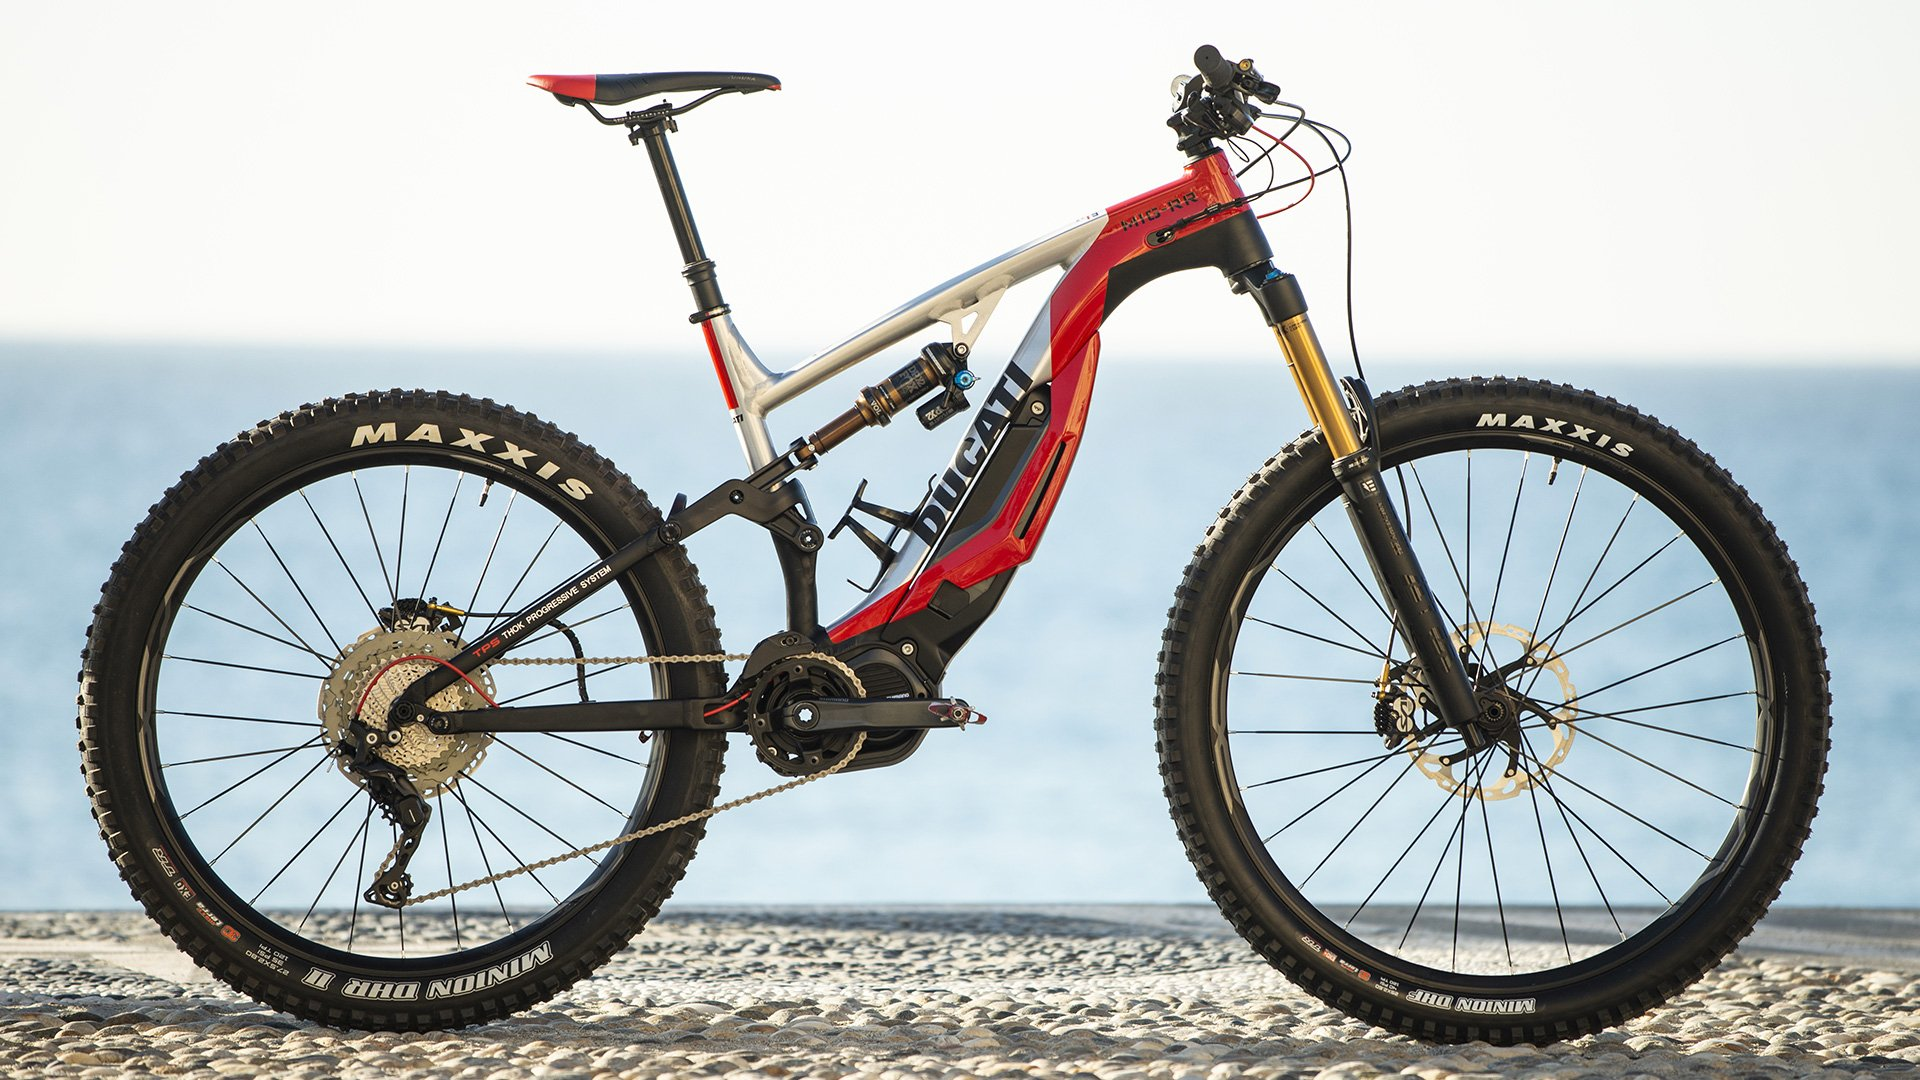 As stylish as its motorcycles - Check out Ducati's electric mountain bike -